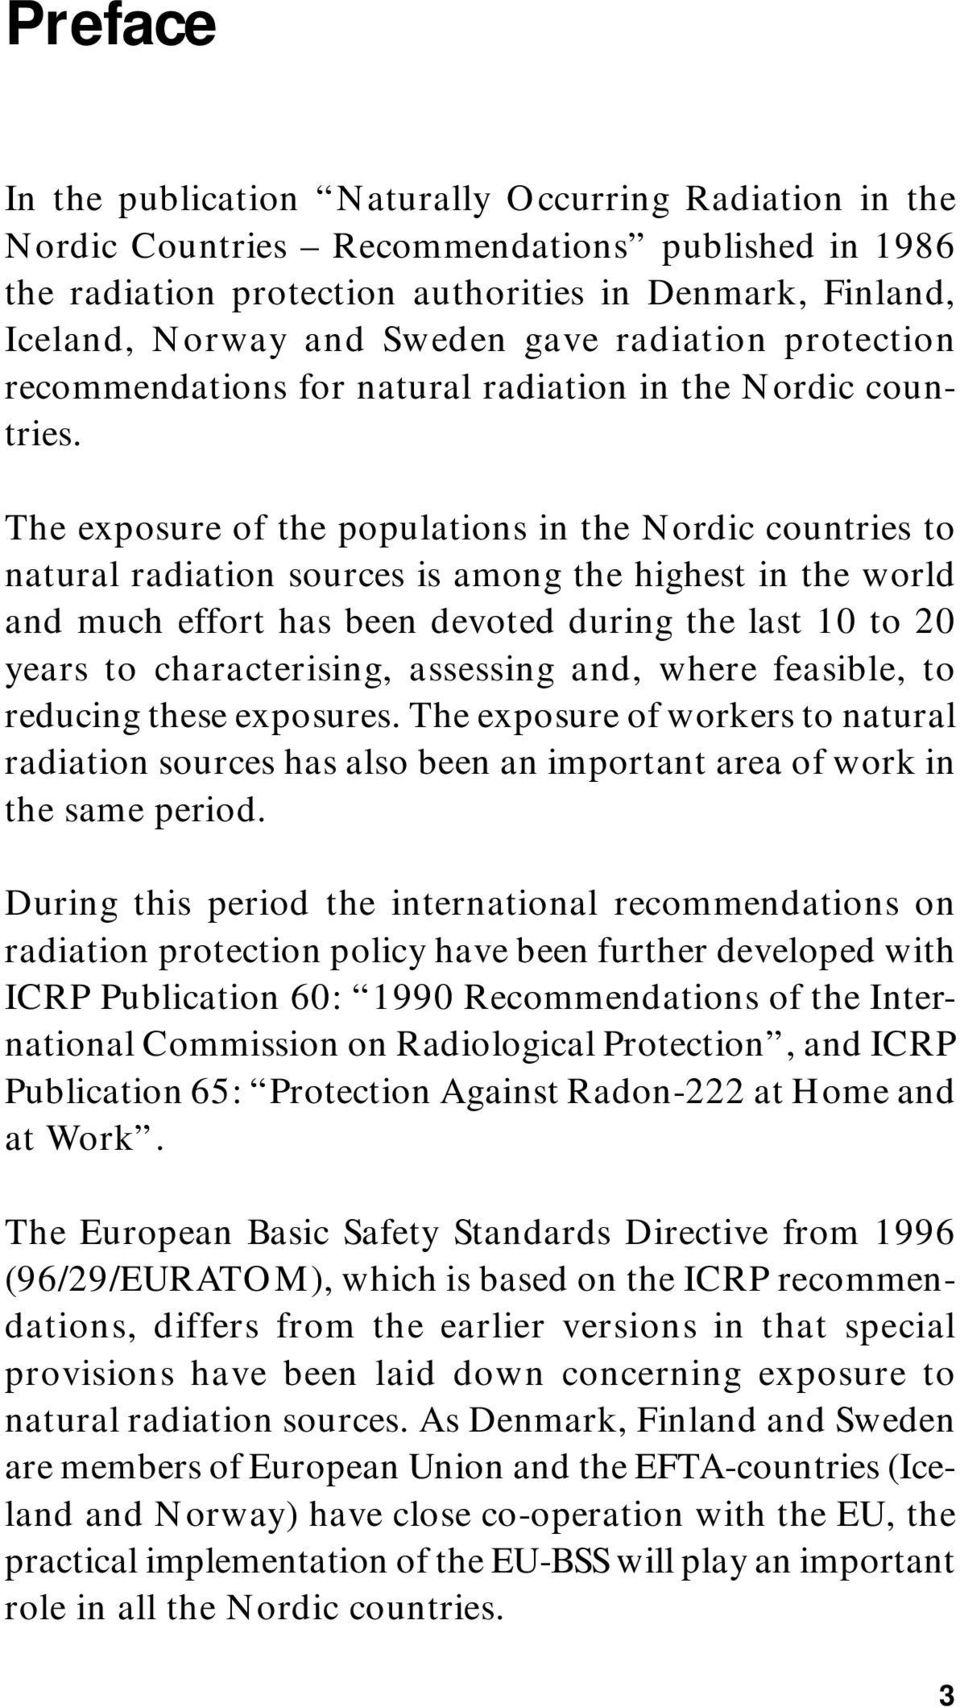 The exposure of the populations in the Nordic countries to natural radiation sources is among the highest in the world and much effort has been devoted during the last 10 to 20 years to